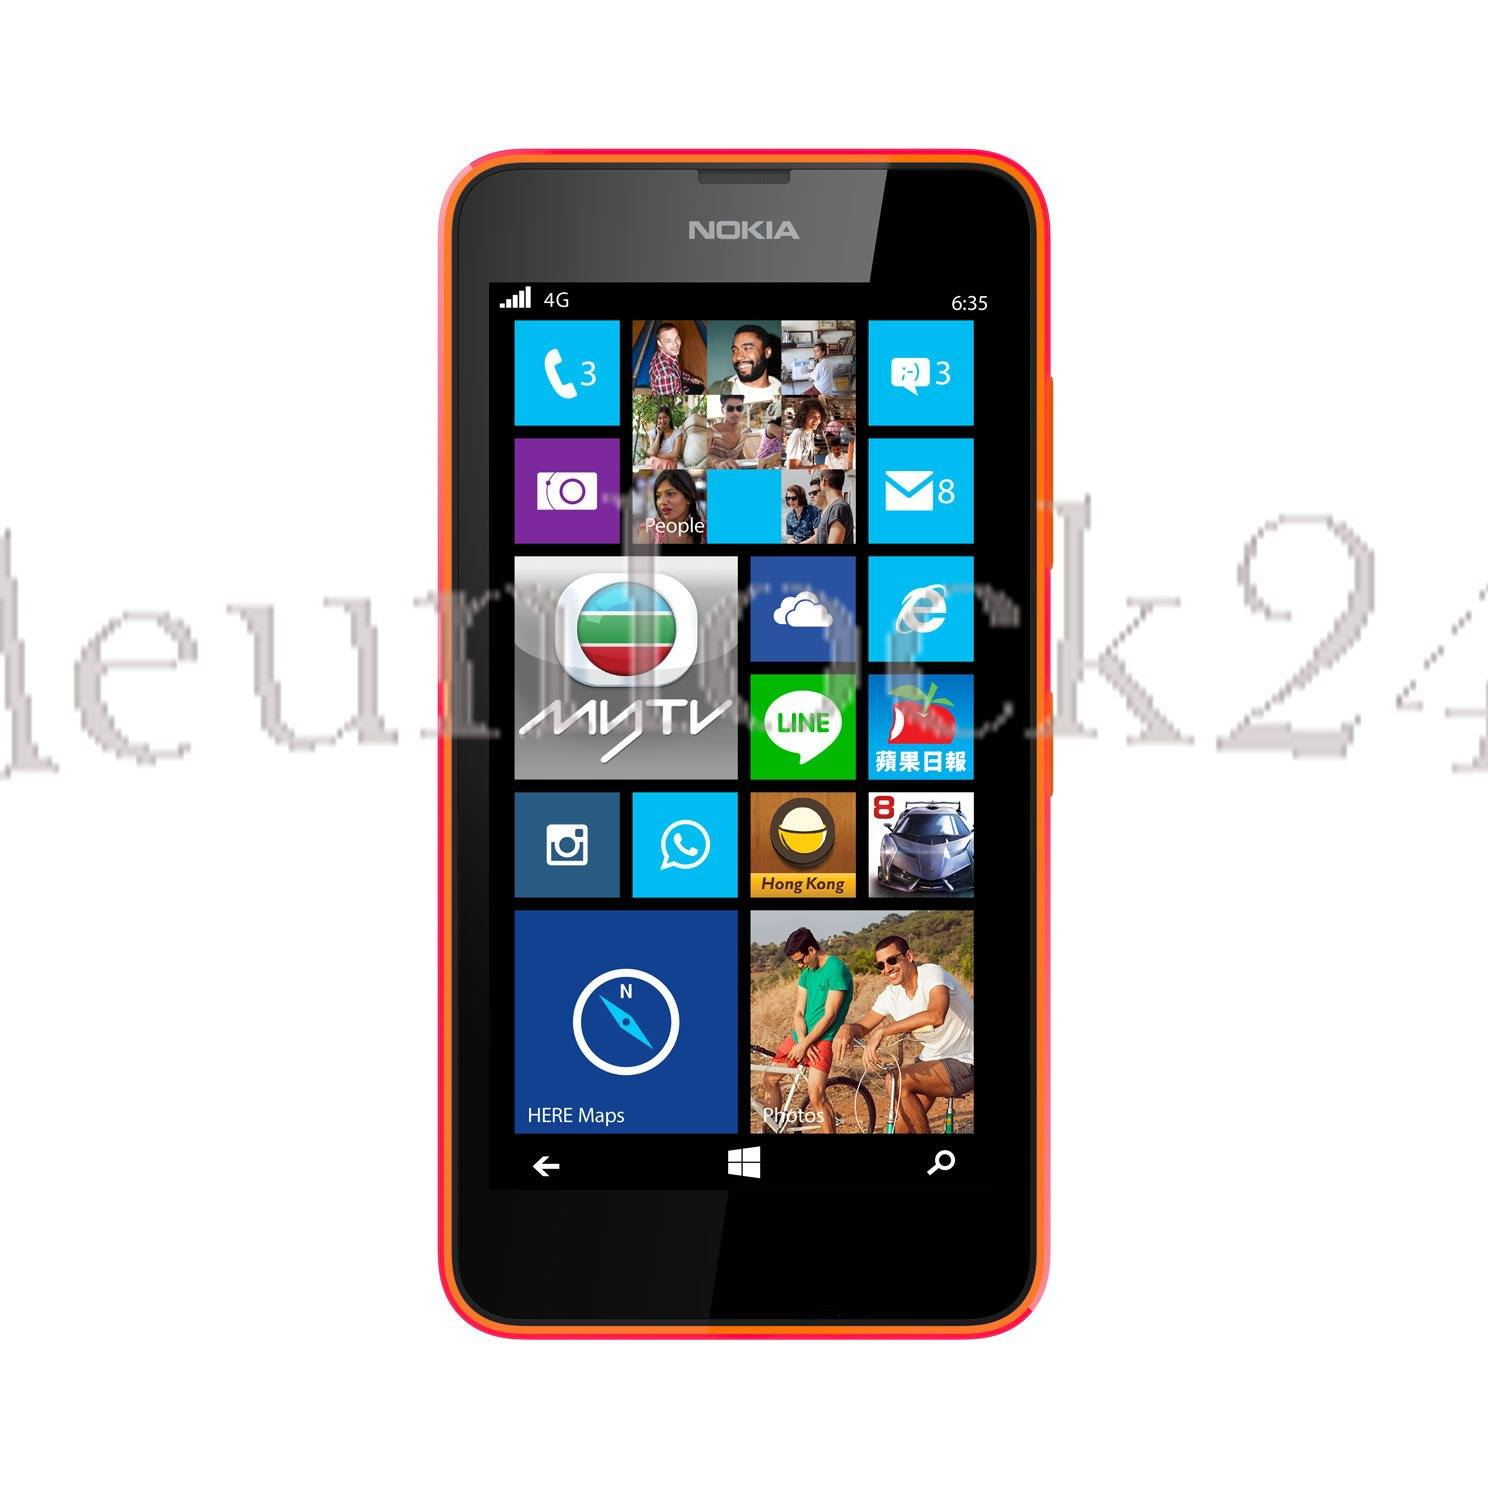 Lumia 521 software update - Lumia 521 Software Update 19